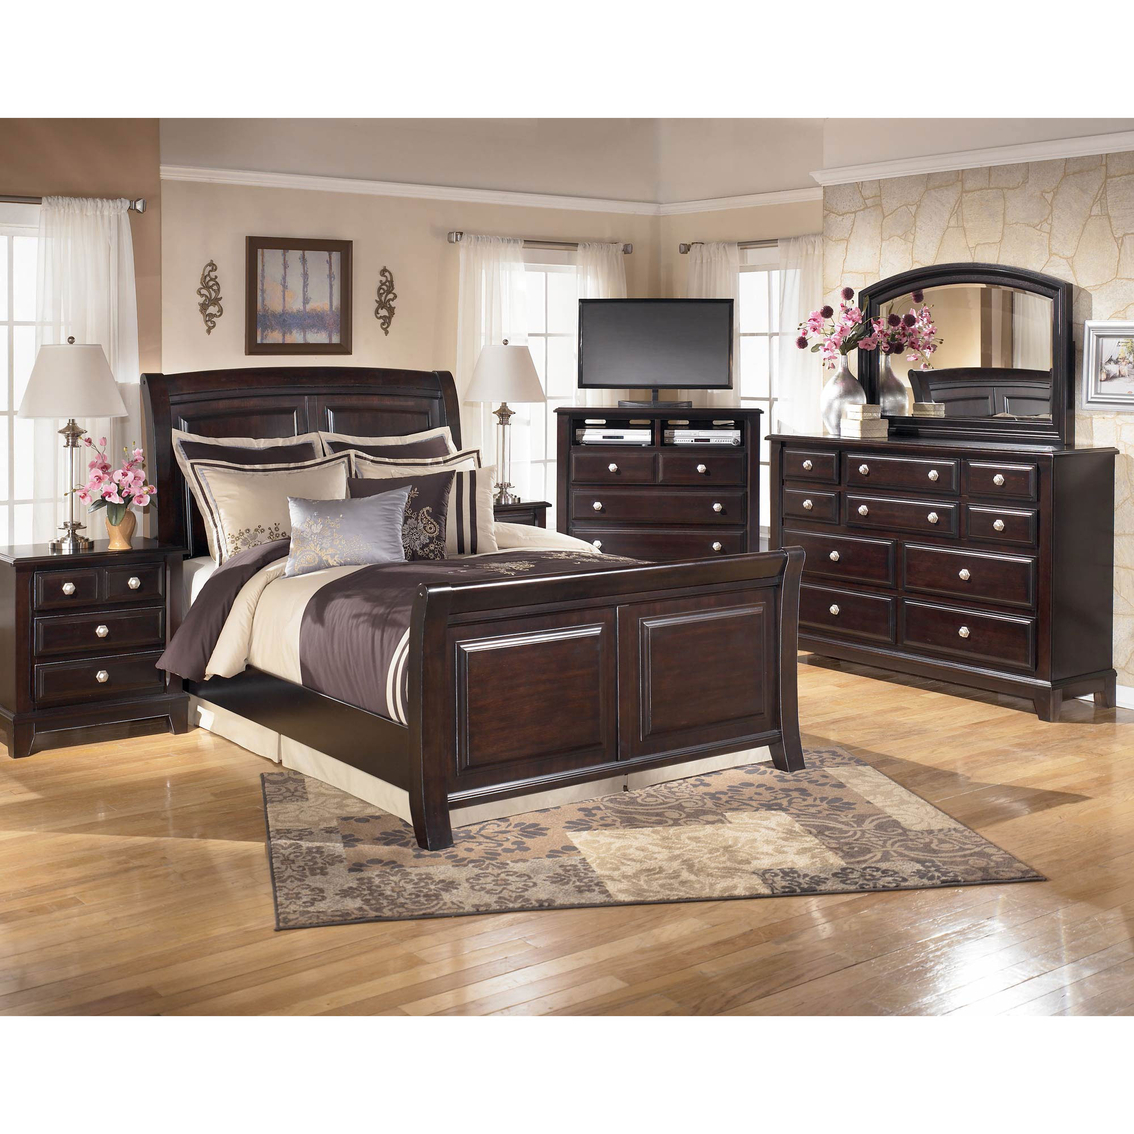 signature design by ashley ridgley 5 pc bedroom set bedroom sets home appliances shop